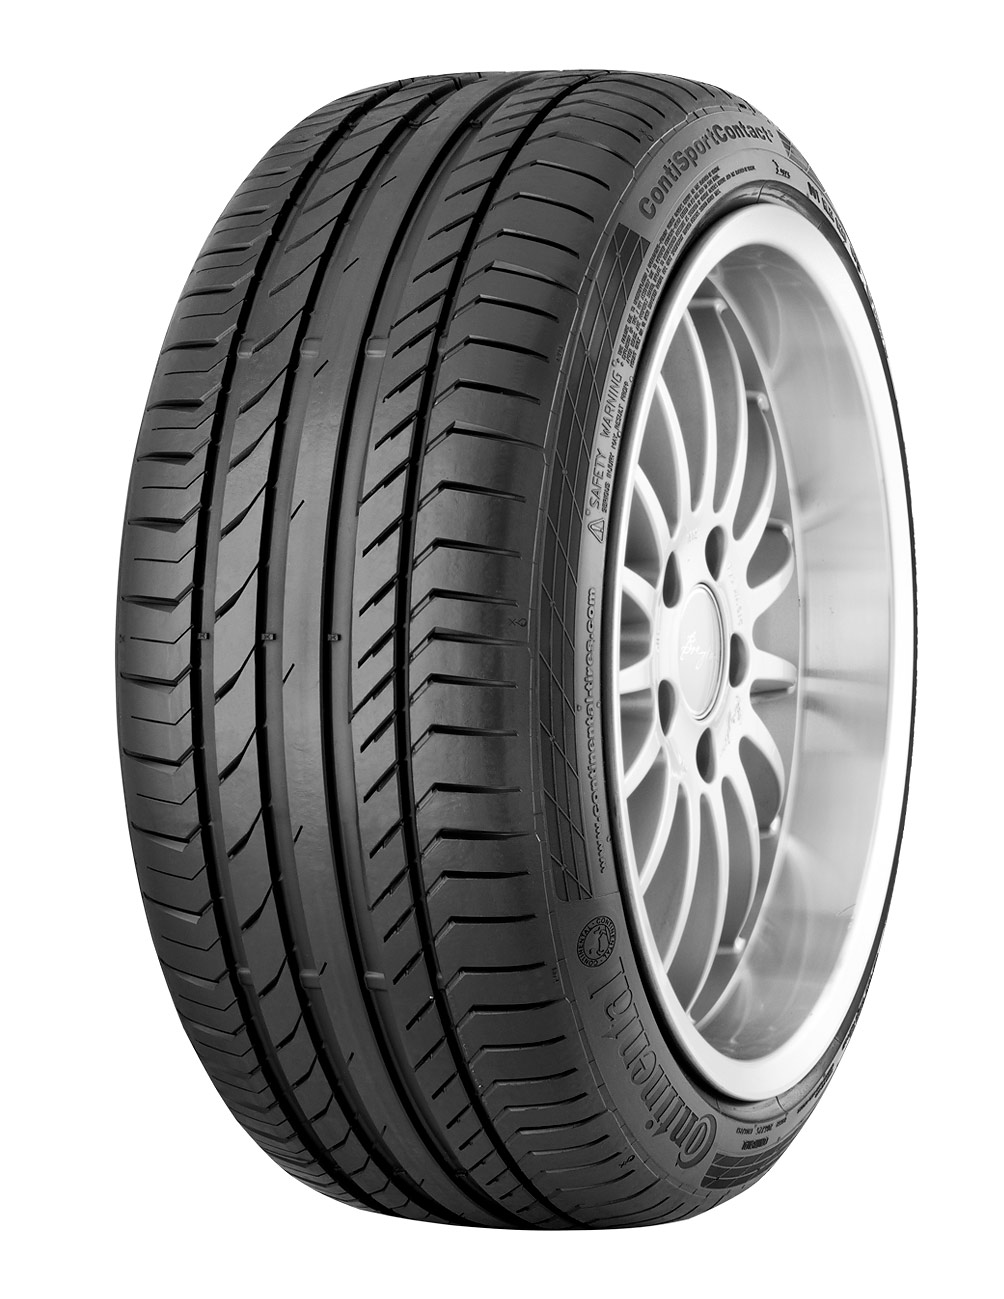 225/45R19 96W CONTINENTAL SPORTCONTACT 5 ASY